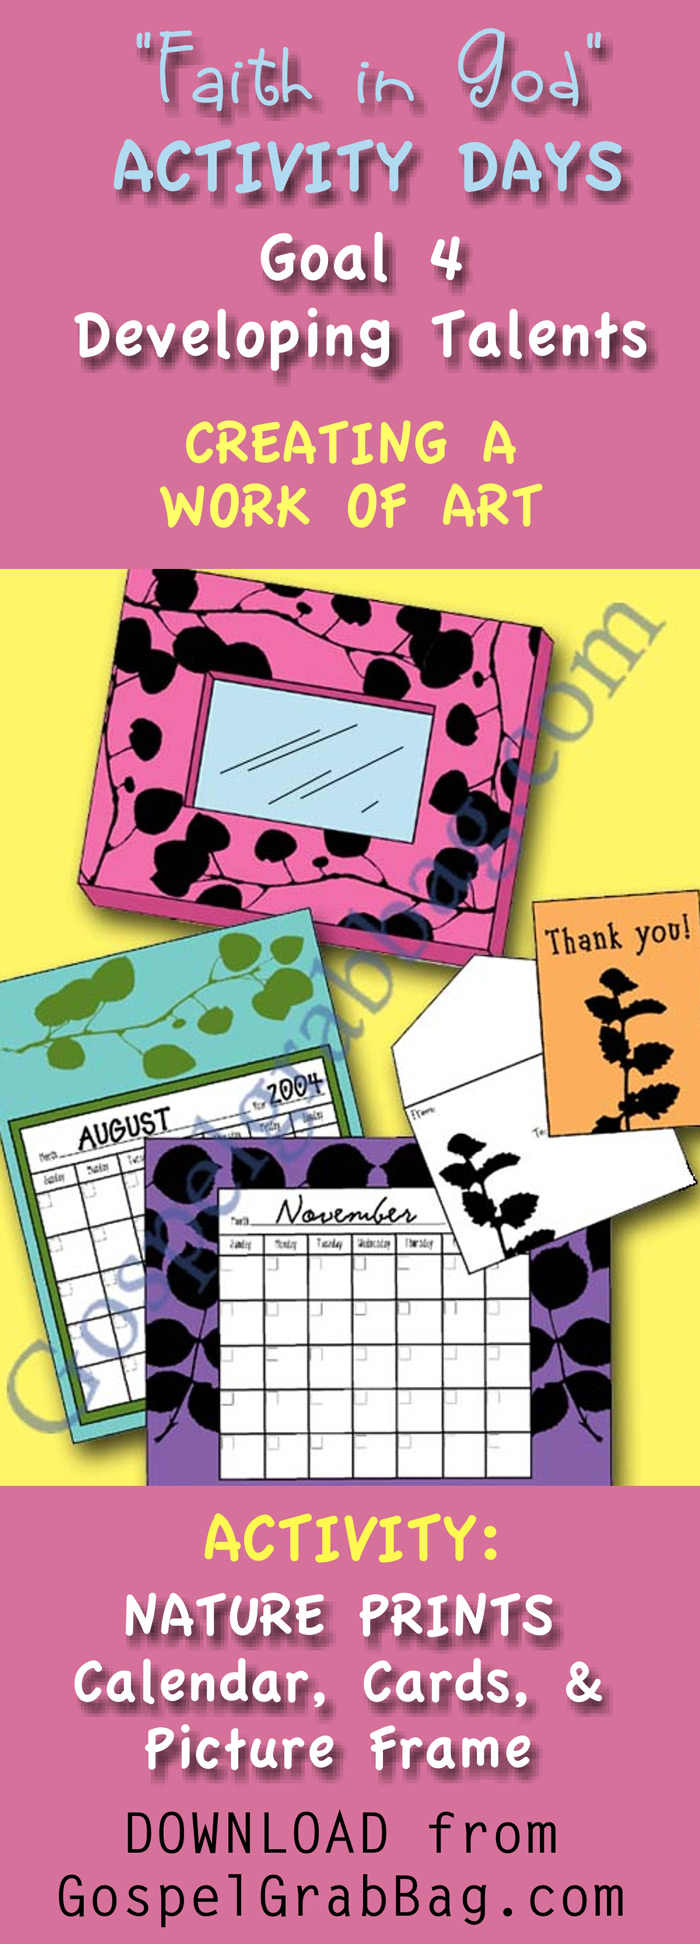 ACTIVITY: (1) Nature Prints (calendar, card, and picture frame), (2) Rock Fun – Tic-tac-Toe game and rock creations – Download activity to achieve Activity Days Developing Talents Goal 4 – GOAL: Make an item from wood, metal, fabric, or other material, or draw, paint, or sculpt a piece of art.  Display your finished work for others to see.  - DOWNLOAD from GospelGrabBag.com